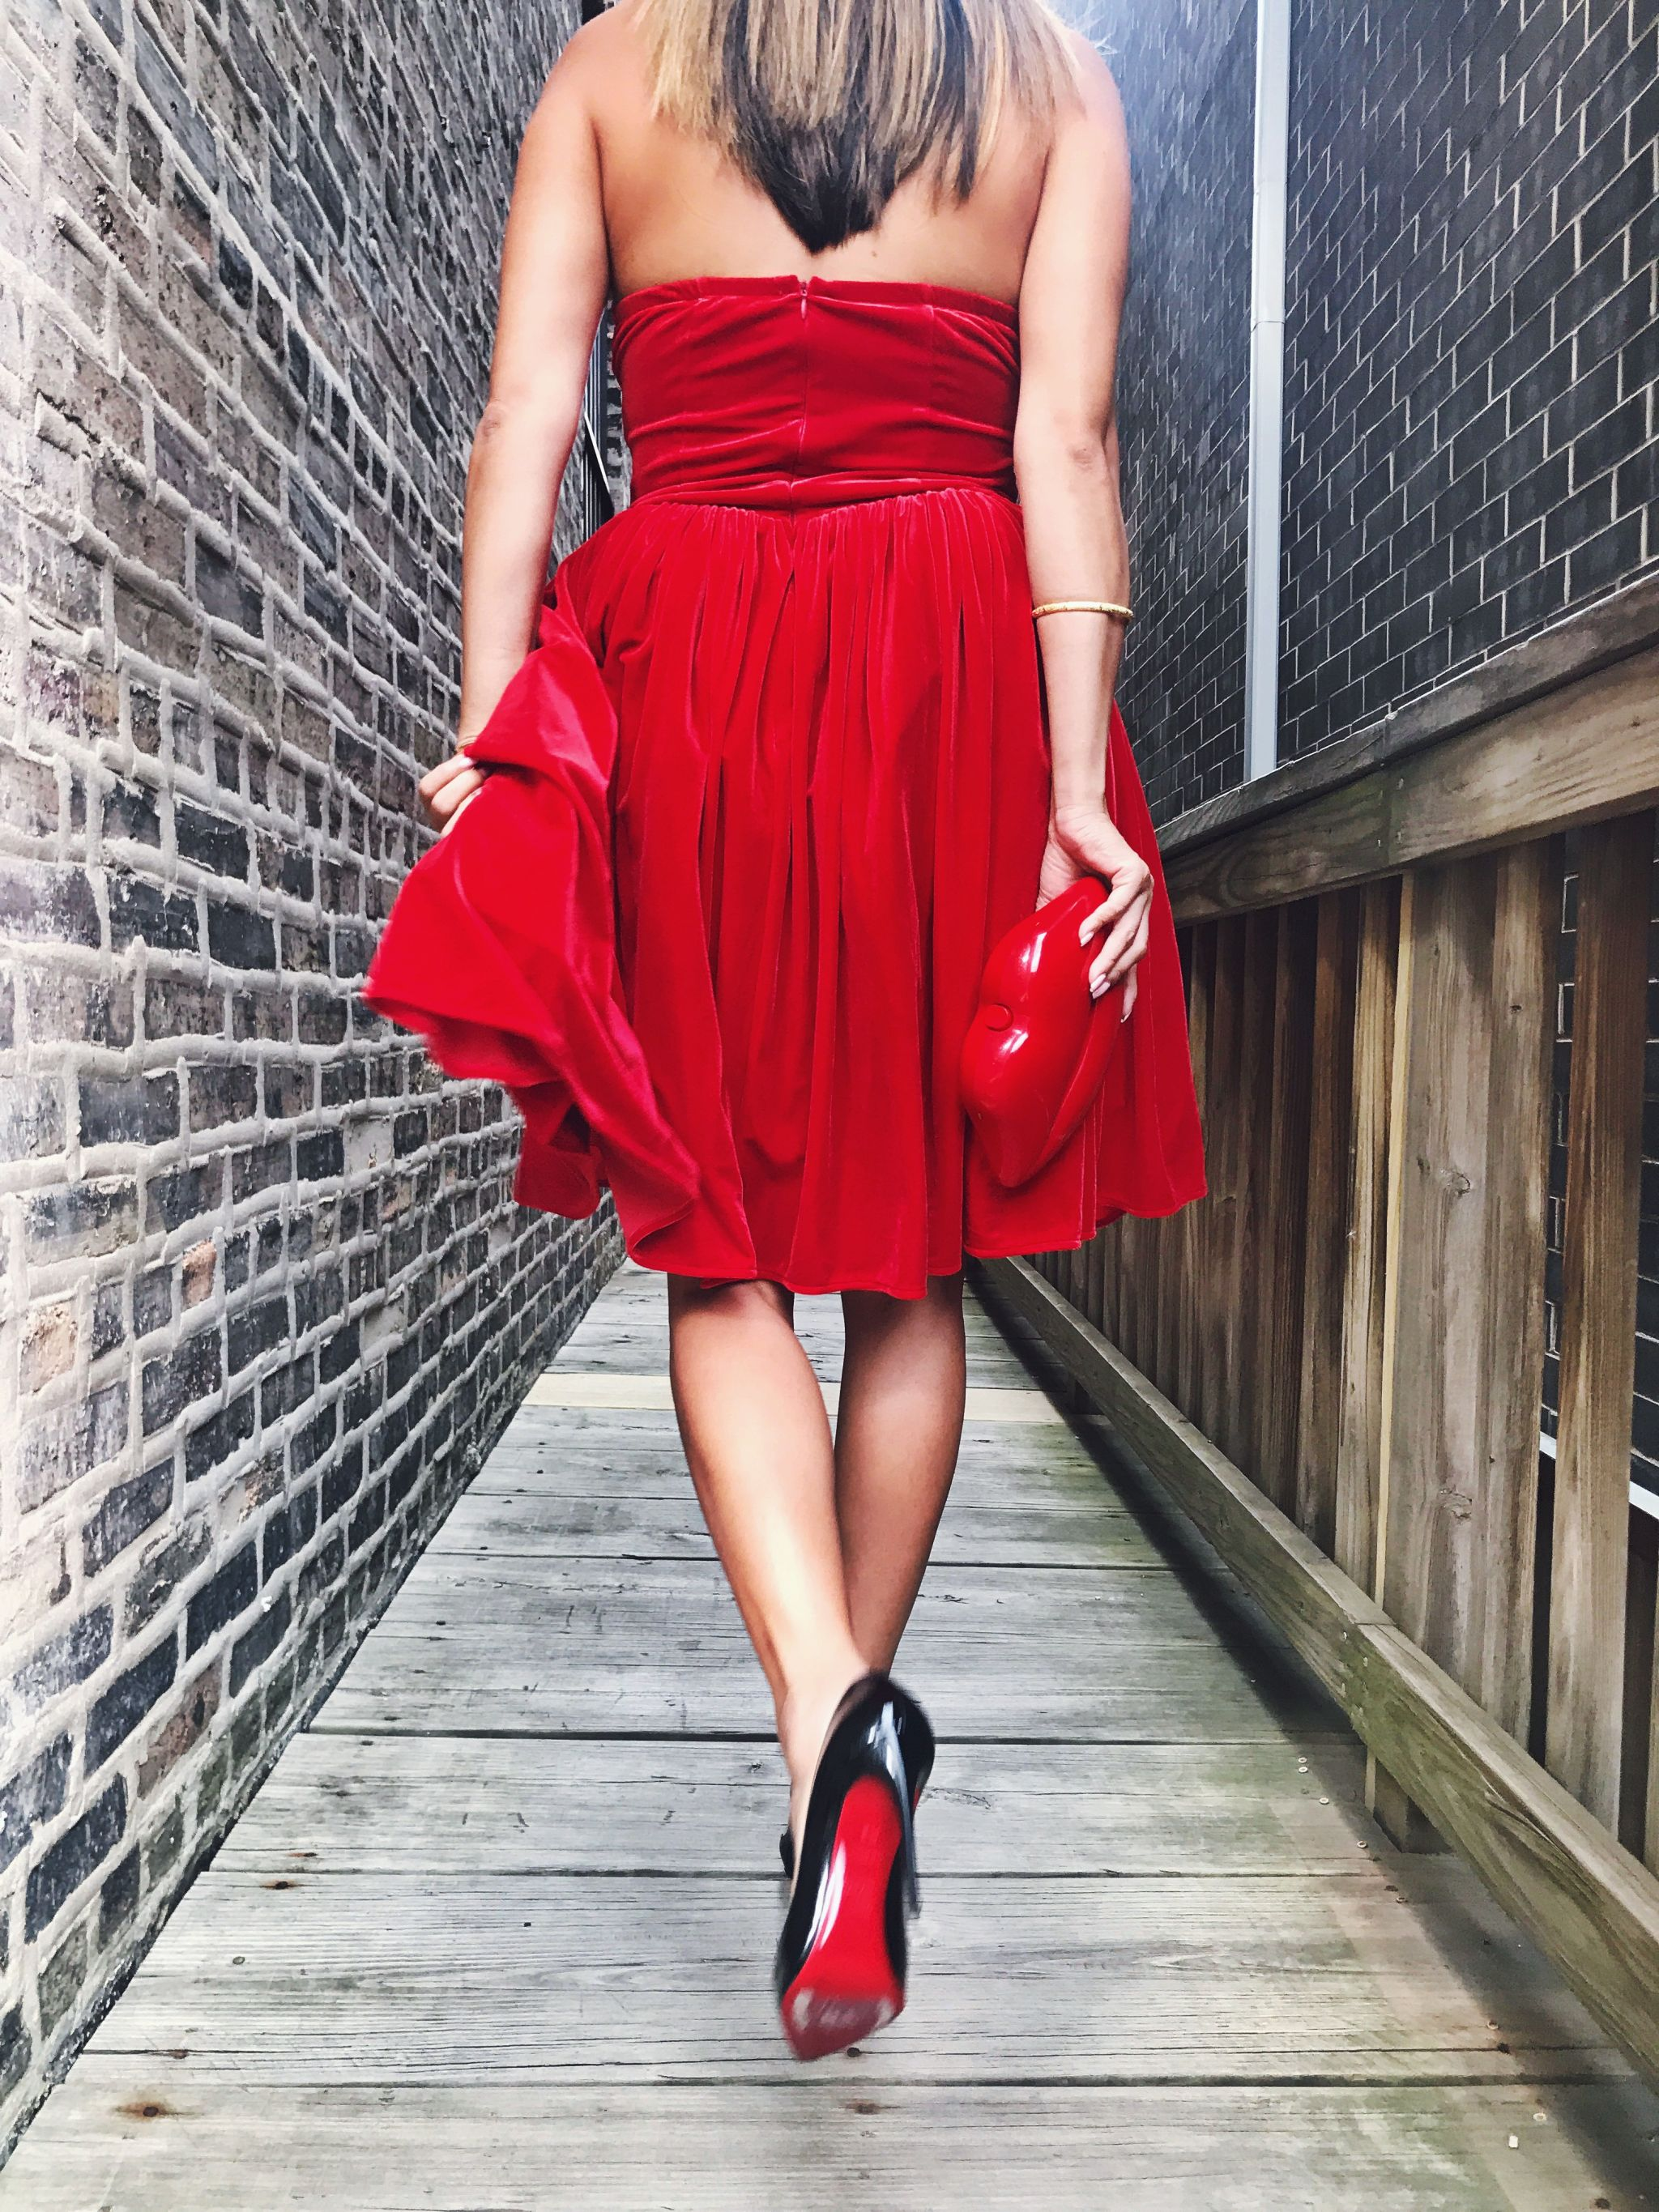 Red Hot Dresses for Valentine's Day - Red Soles and Red Wine에 대한 갤러리